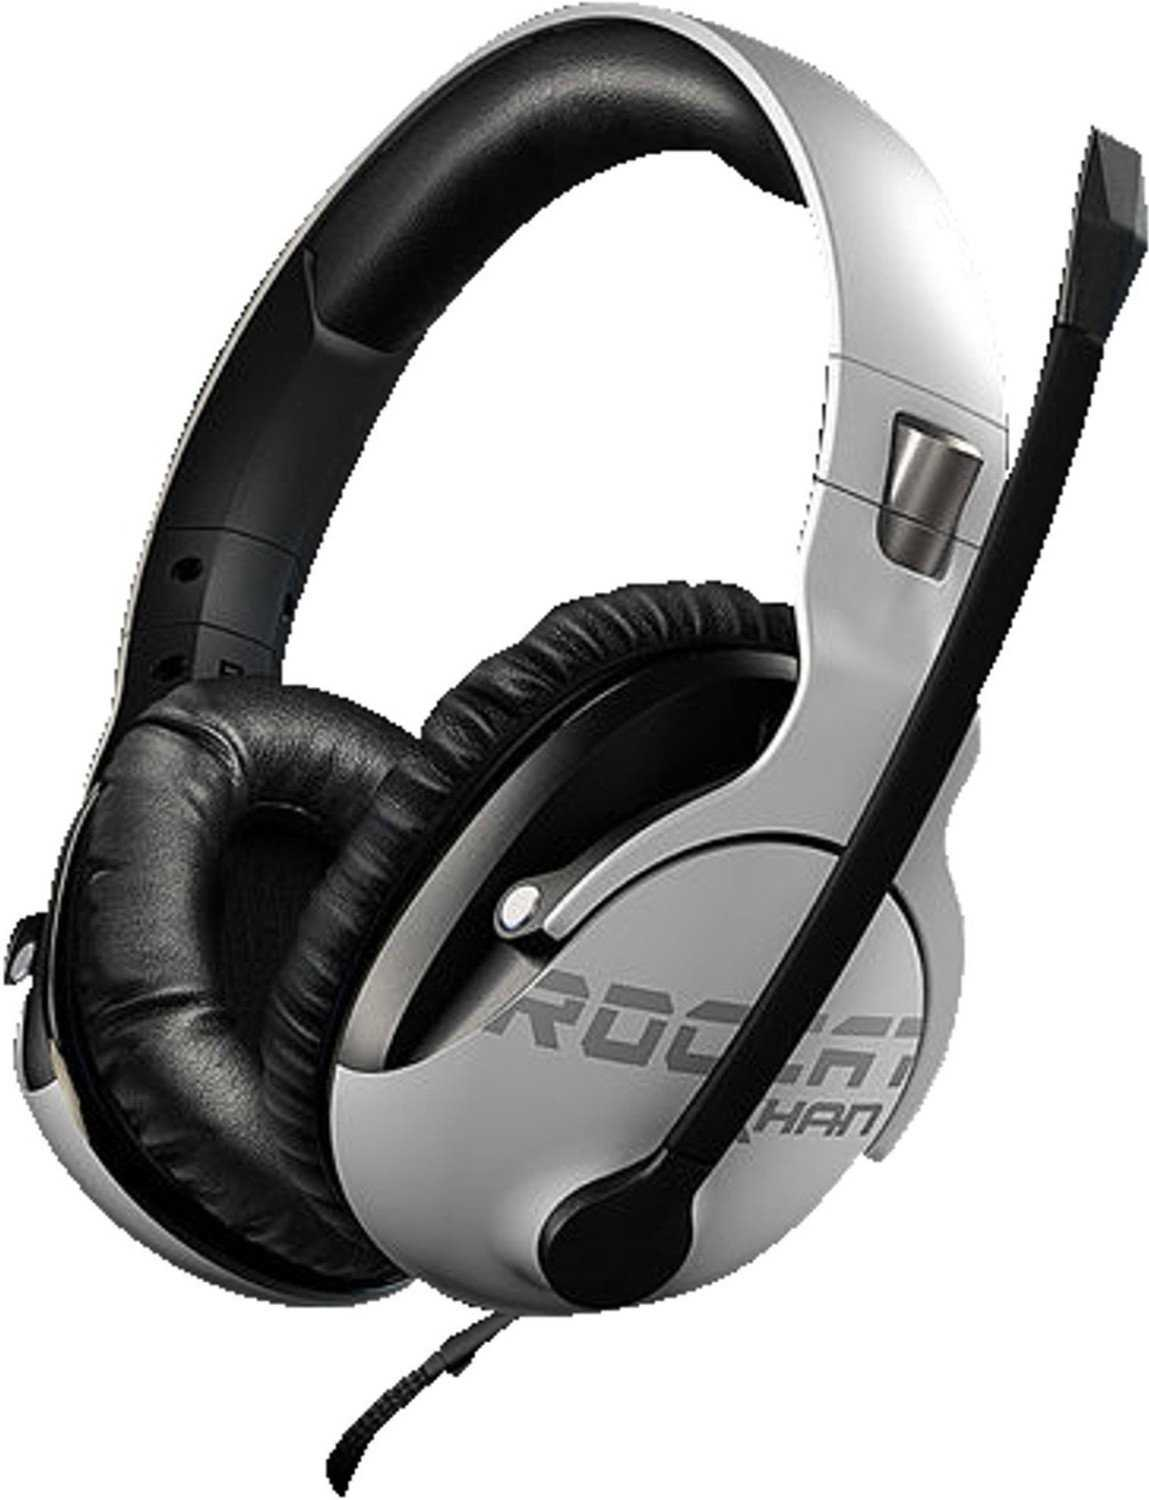 roccat-khan-pro-headset-bei-alternate-1